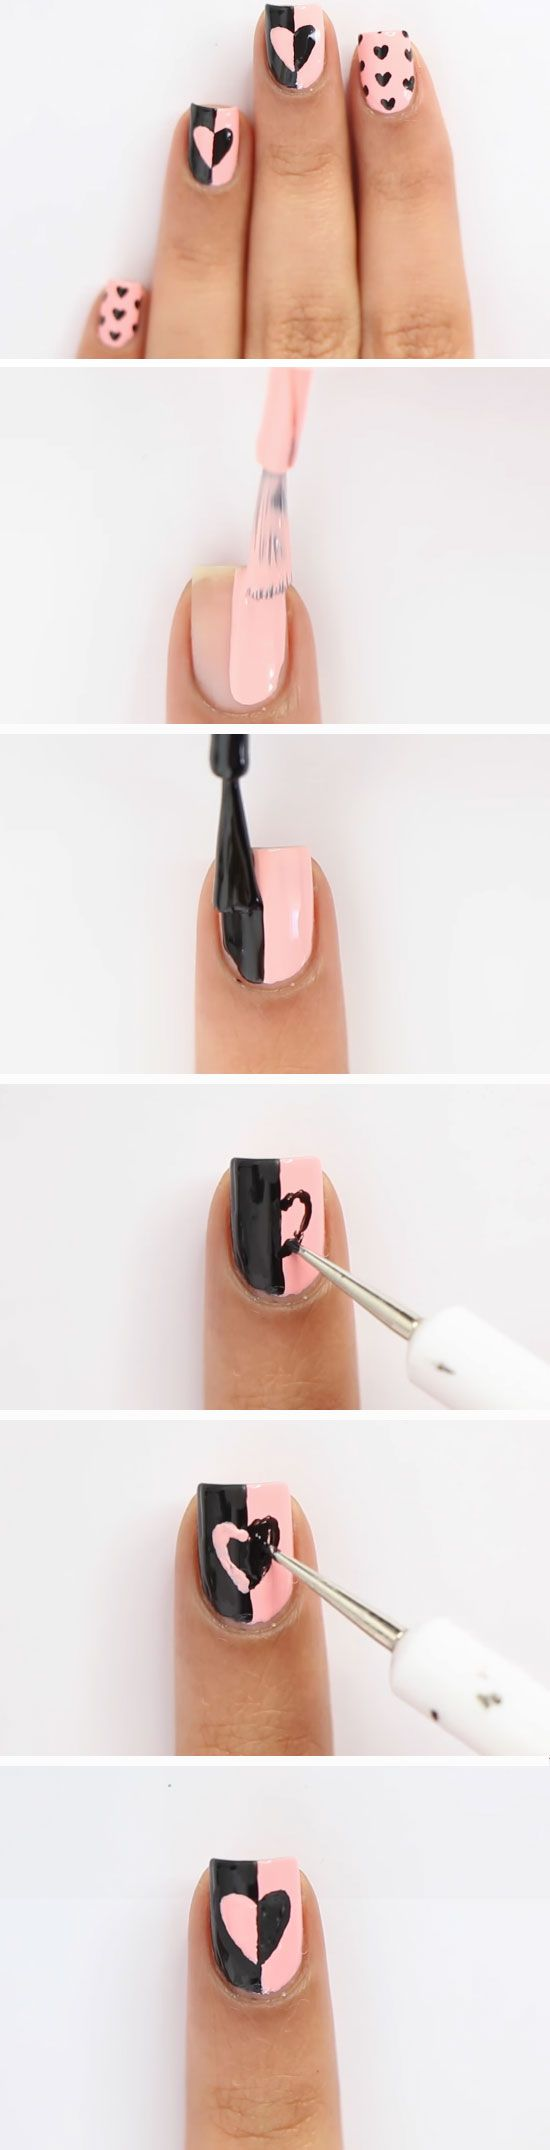 Queen of hearts 15 easy valentines day nail designs for short queen of hearts 15 easy valentines day nail designs for short nails diy nail art ideas for spring uas decoradas f pinterest short nails prinsesfo Images